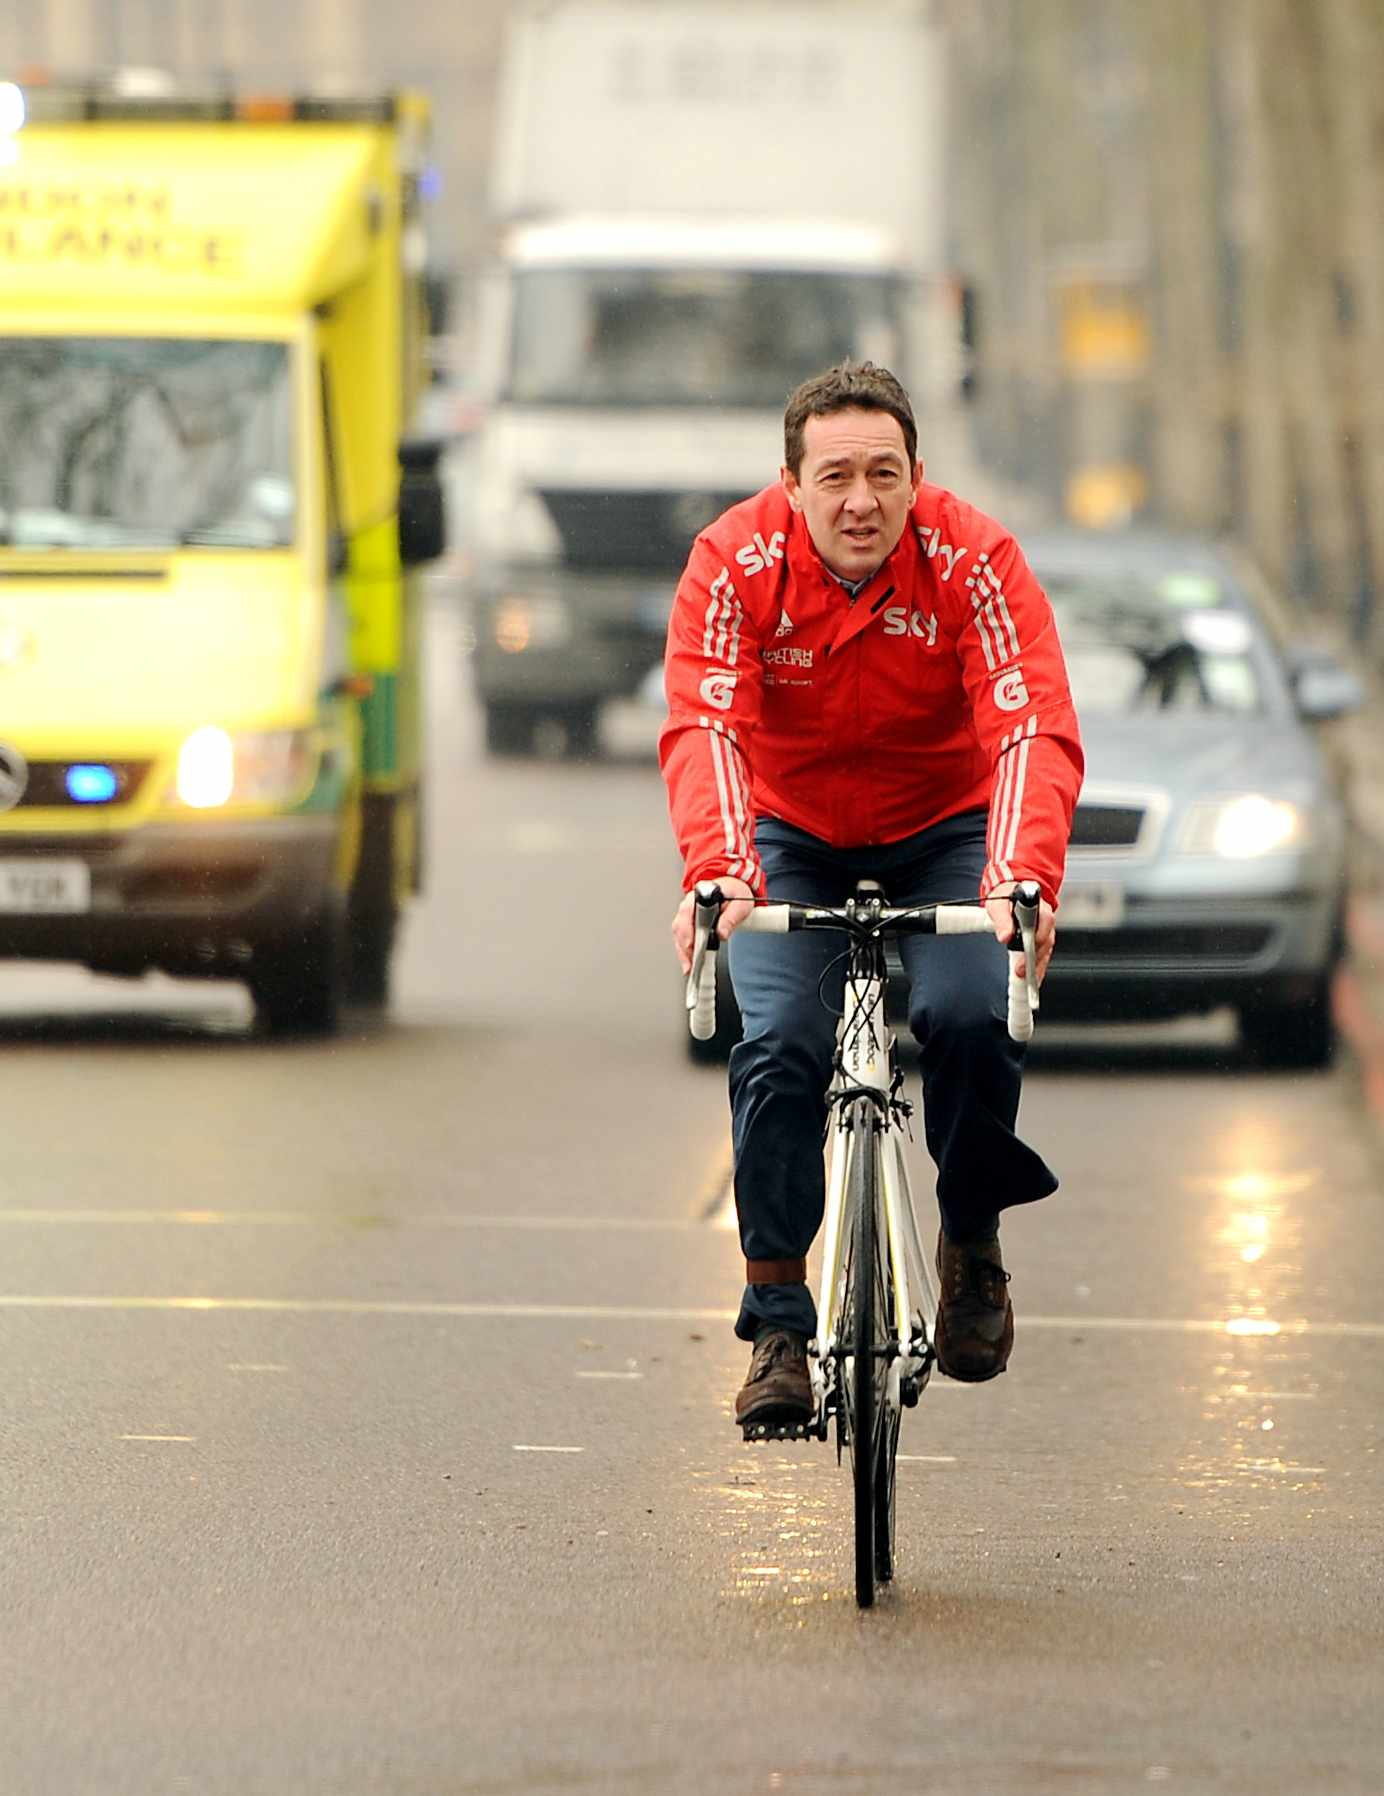 Chris Boardman has welcomed changes to a key road building document that promotes so-called cycle-proofing